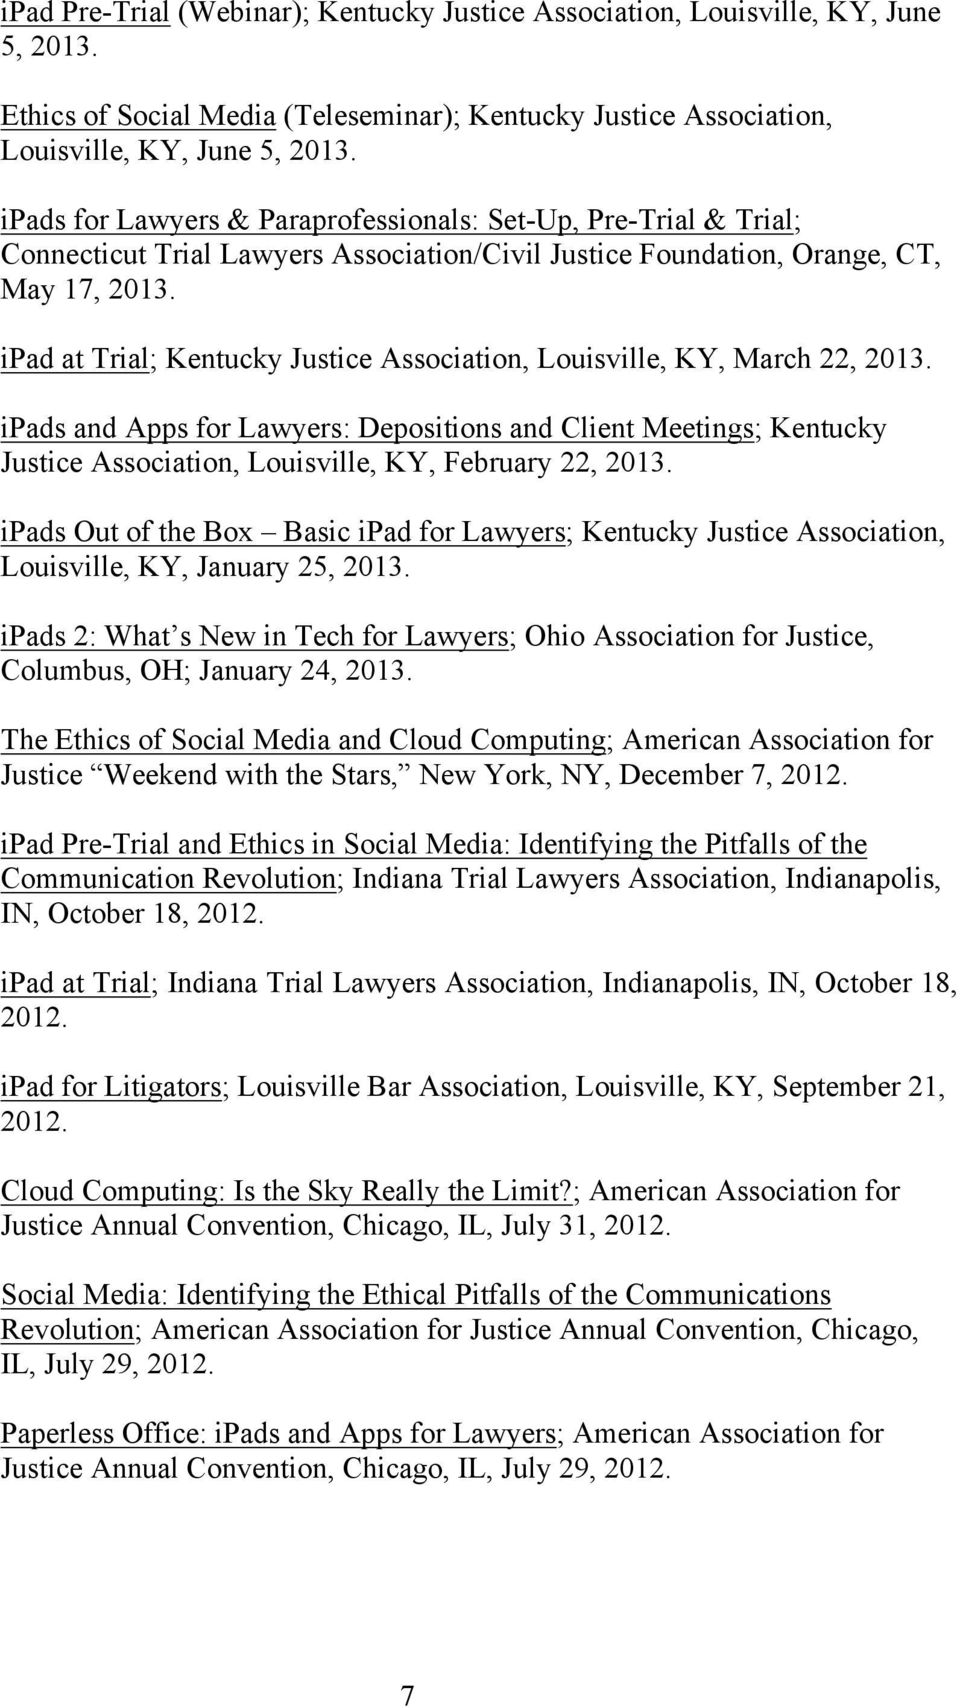 ipad at Trial; Kentucky Justice Association, Louisville, KY, March 22, 2013.